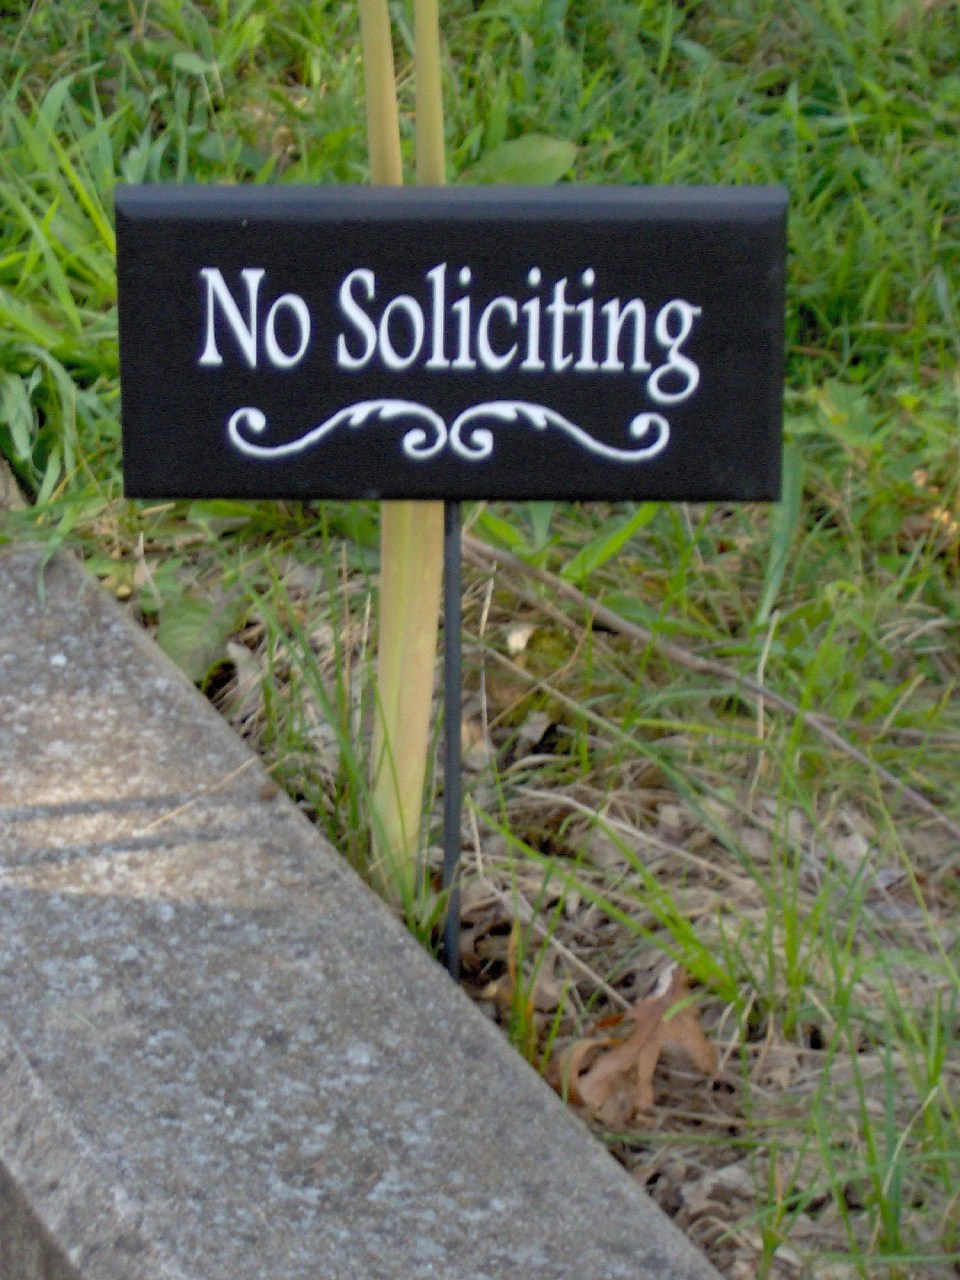 Best No Soliciting Decorative Swirl Wood Sign Outdoor Vinyl Yard This Month